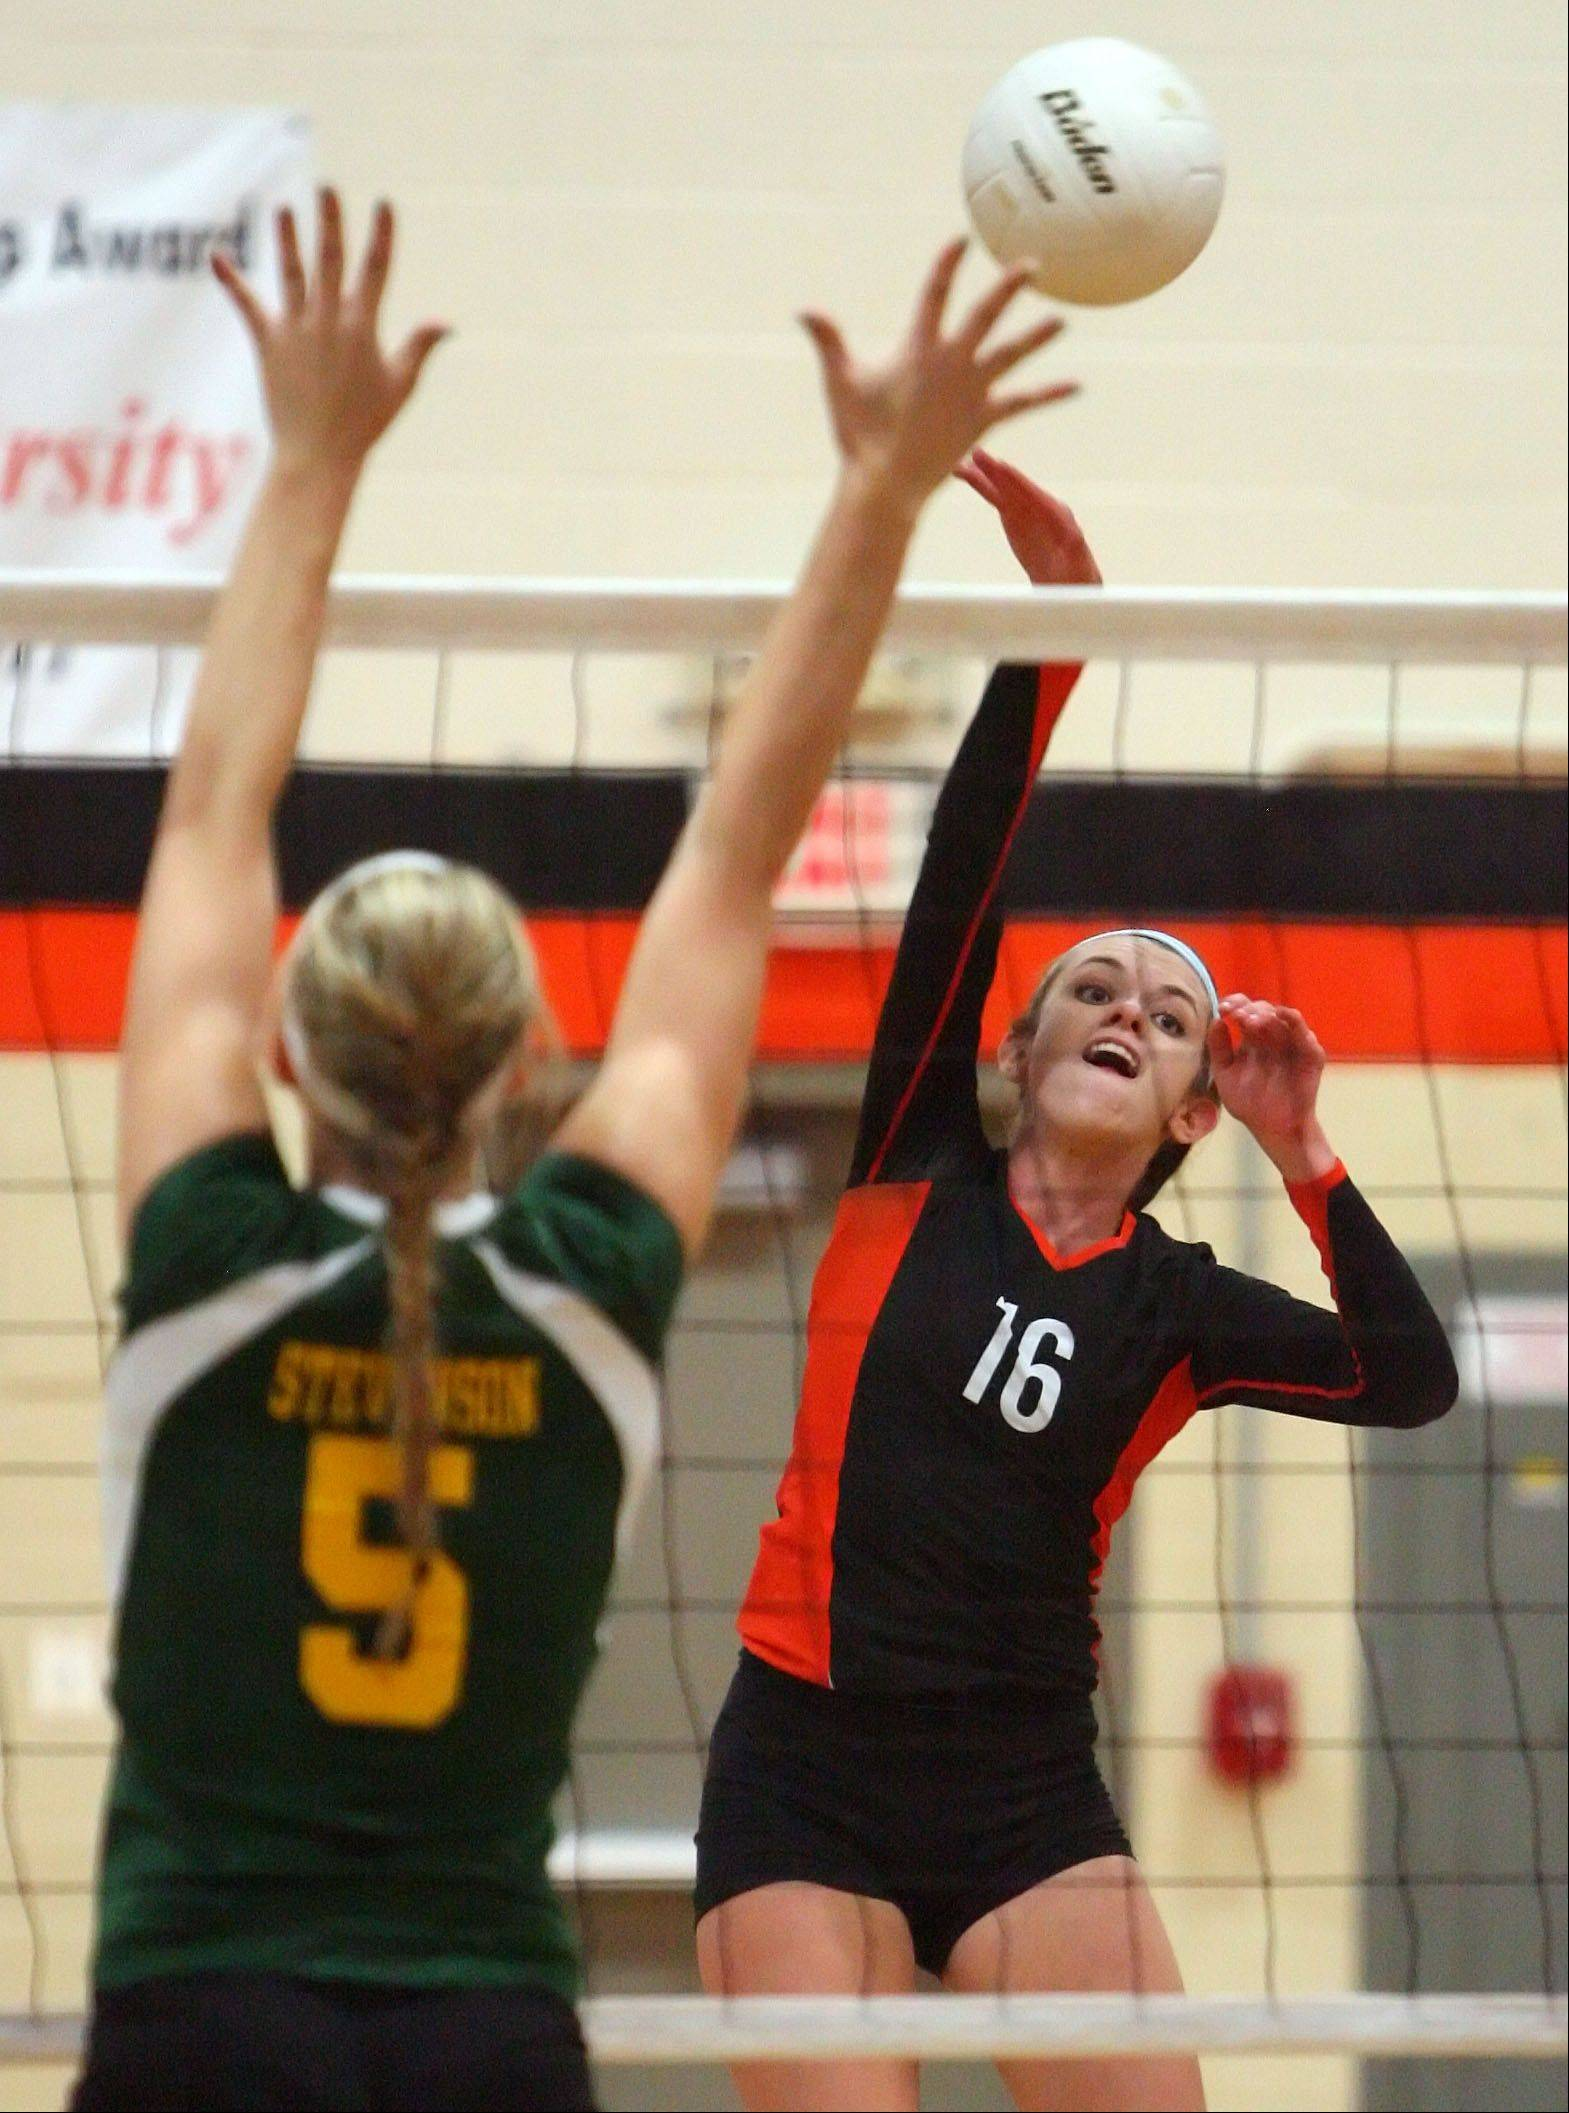 Libertyville's Rhiannon Prentiss, right, spikes one toward Stevenson's Jenna Radtke during the Wildcats' 3-set win Wednesday night at Libertyville High School.